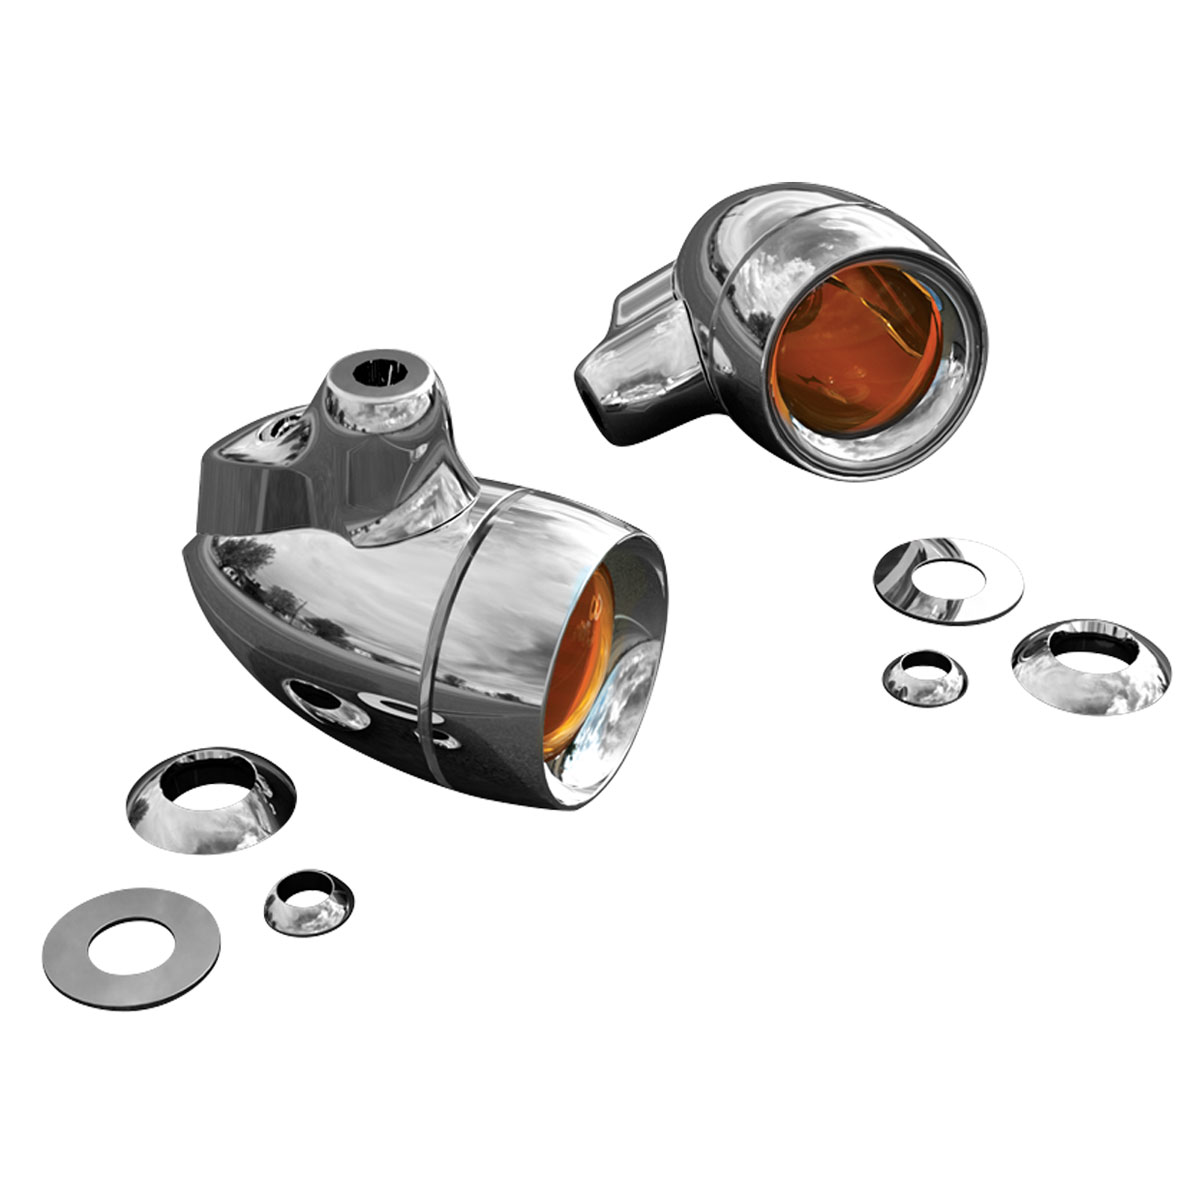 Kuryakyn Universal Amber Dual Circuit Turn Signals with Smoked Lenses